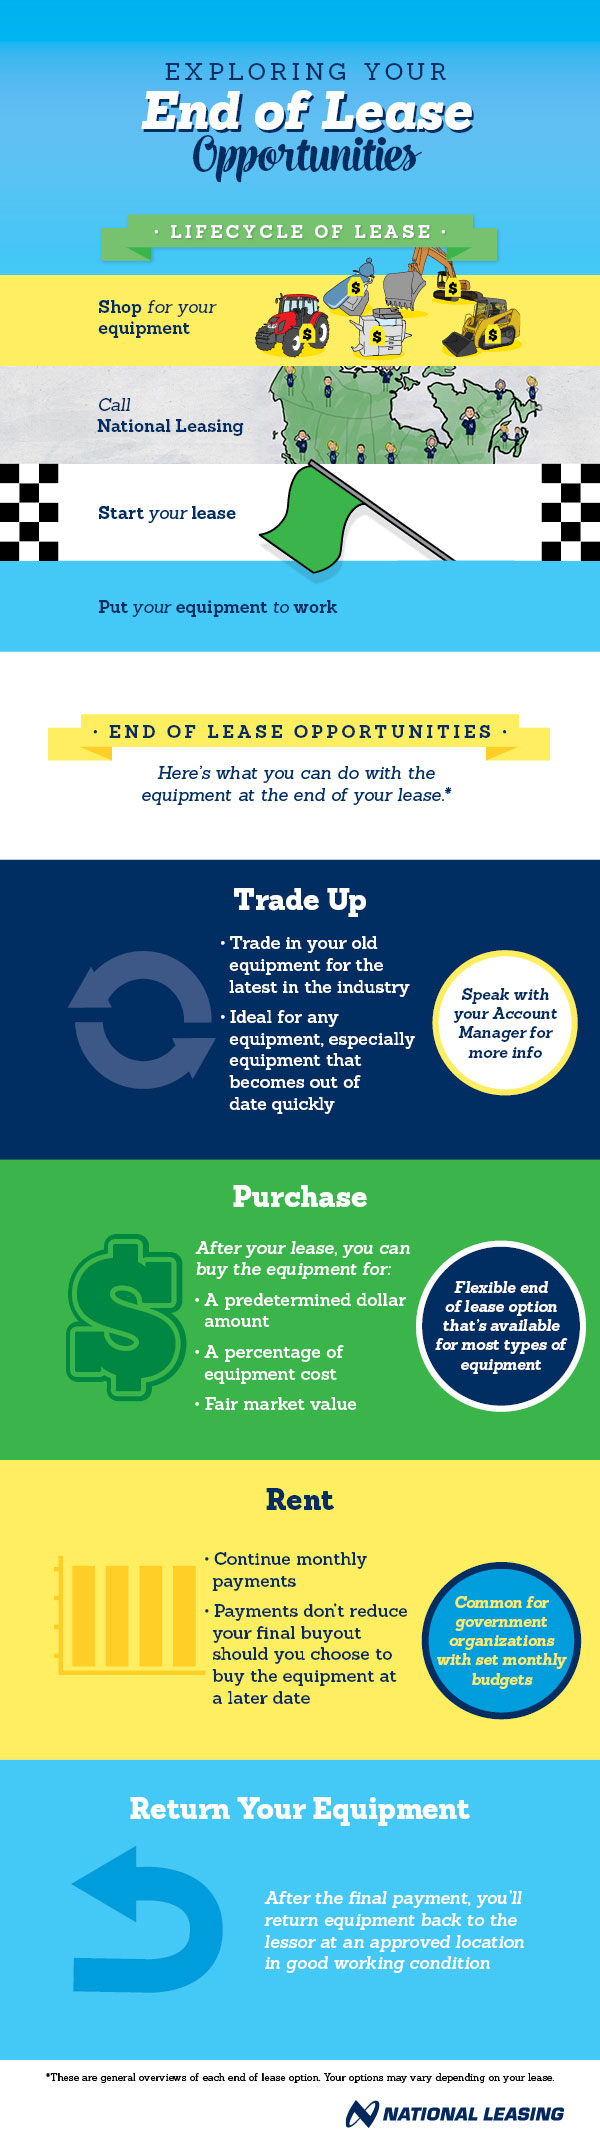 Exploring Your End of Lease Opportunities infographic